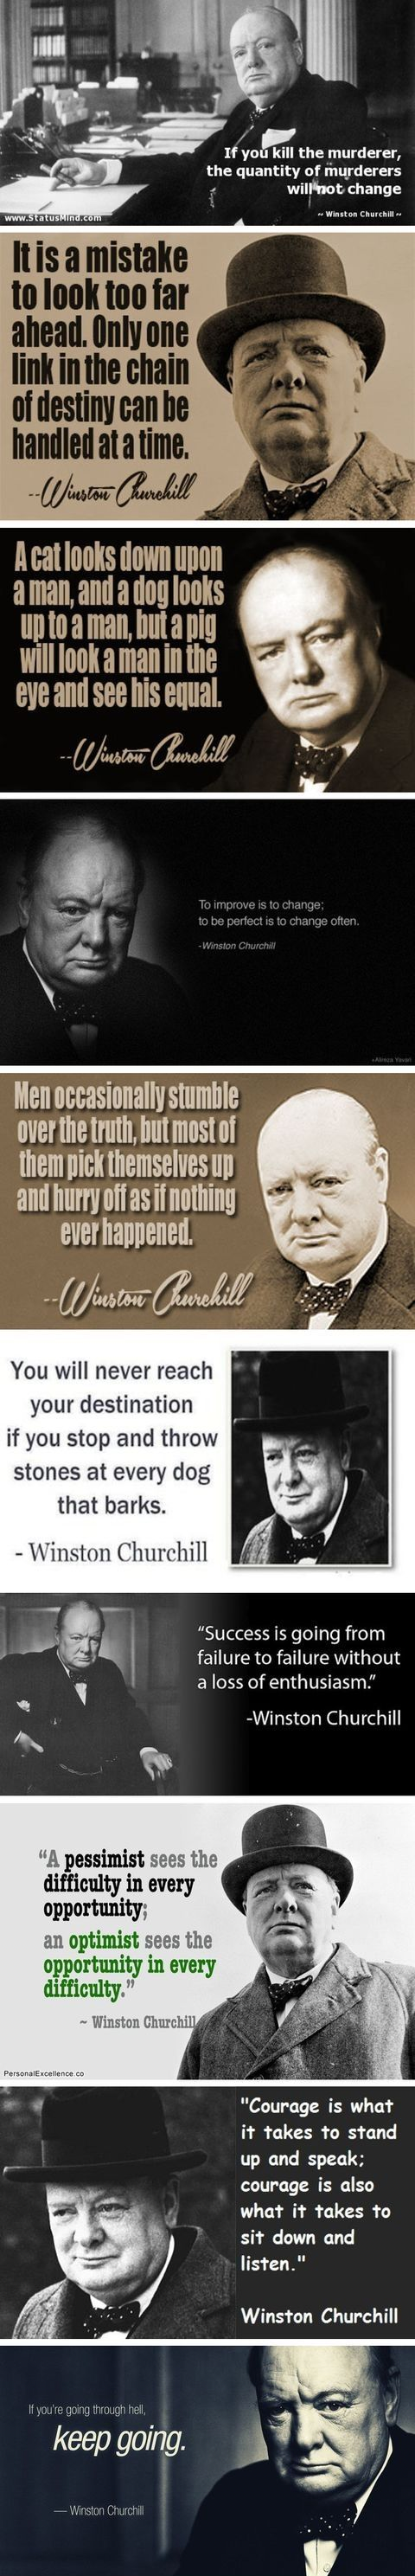 Winston Churchill was a wise man